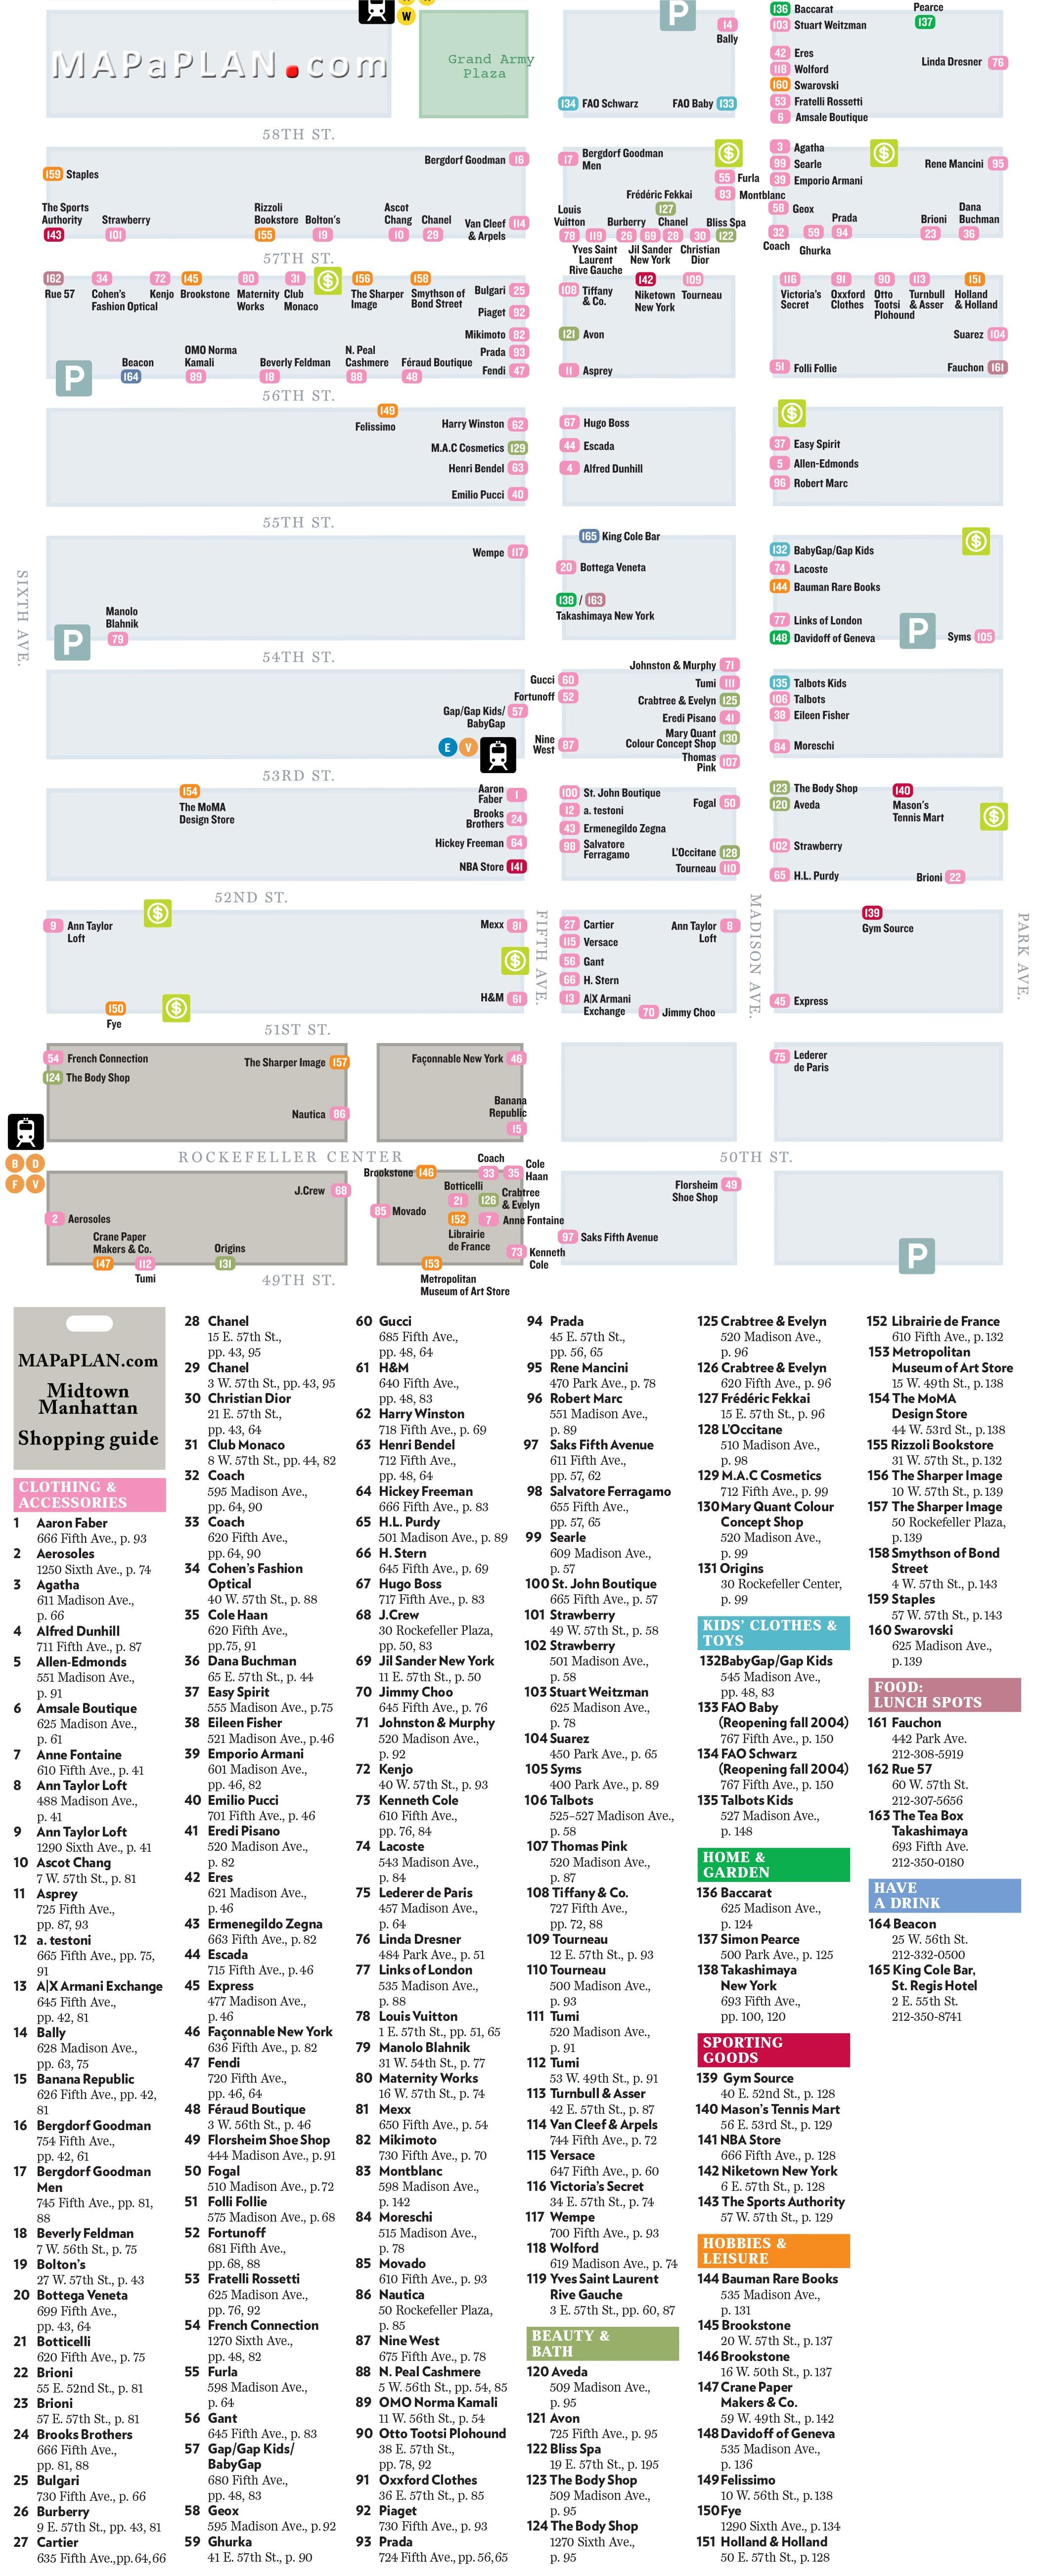 midtown manhattan shopping guide directory list new york top tourist attractions map